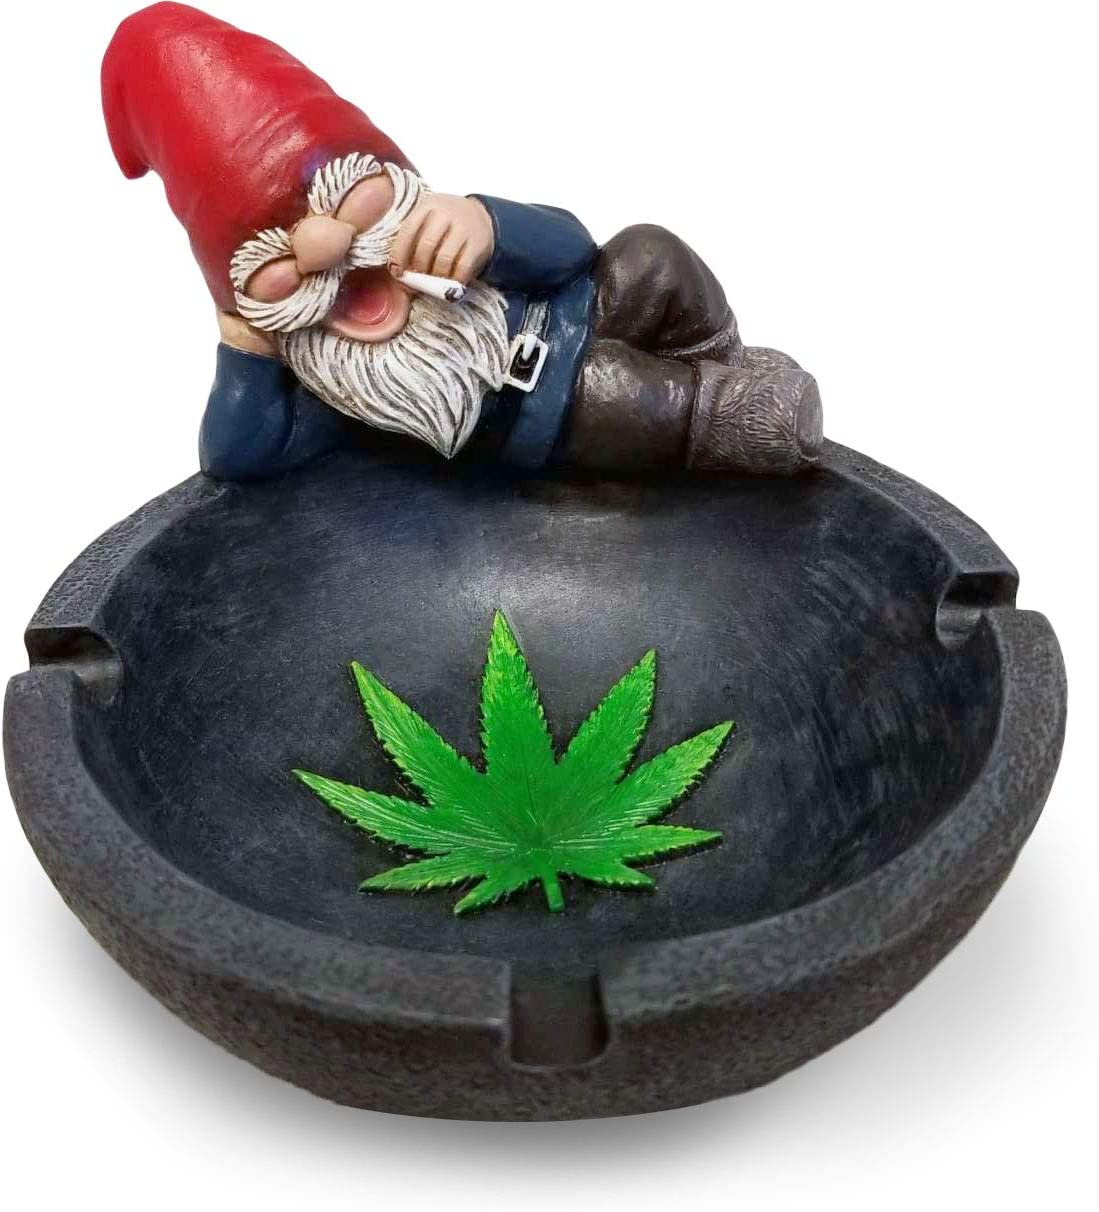 World of Wonders - Gnaughty Gnomes Series - Smokin' Good Time - Collectible Stoner Gnome with Joint Ashtray Embossed Cannabis Pot Leaf Accent Smoking Accessory 420 Home Decor Bar Accent, 4.75-inch